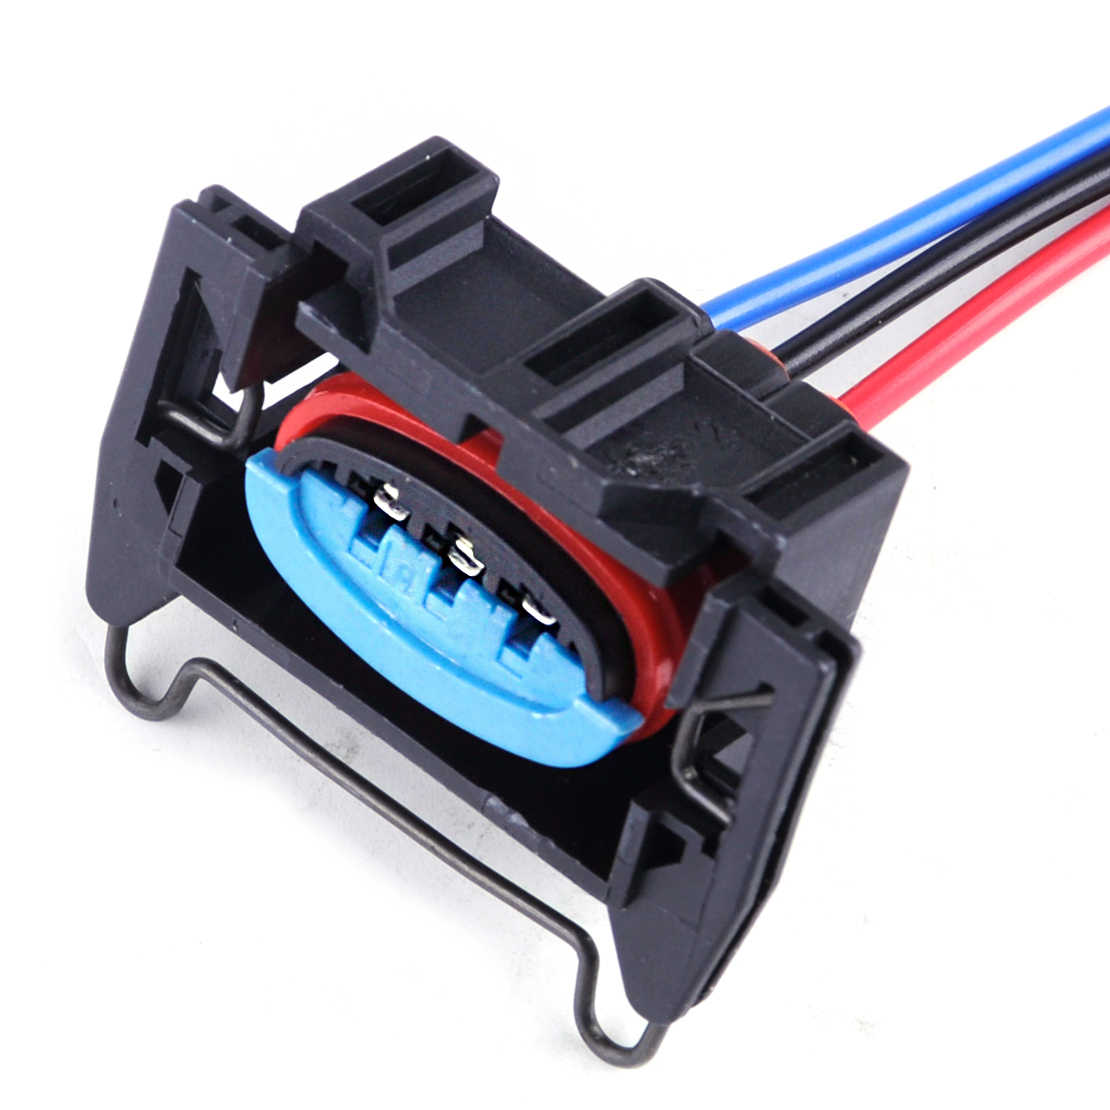 beler Ignition Coil Pack Wiring Harness Connector Fit For Ford Mazda  645-302 3U2Z14S411TNA 1P1727 57-5508